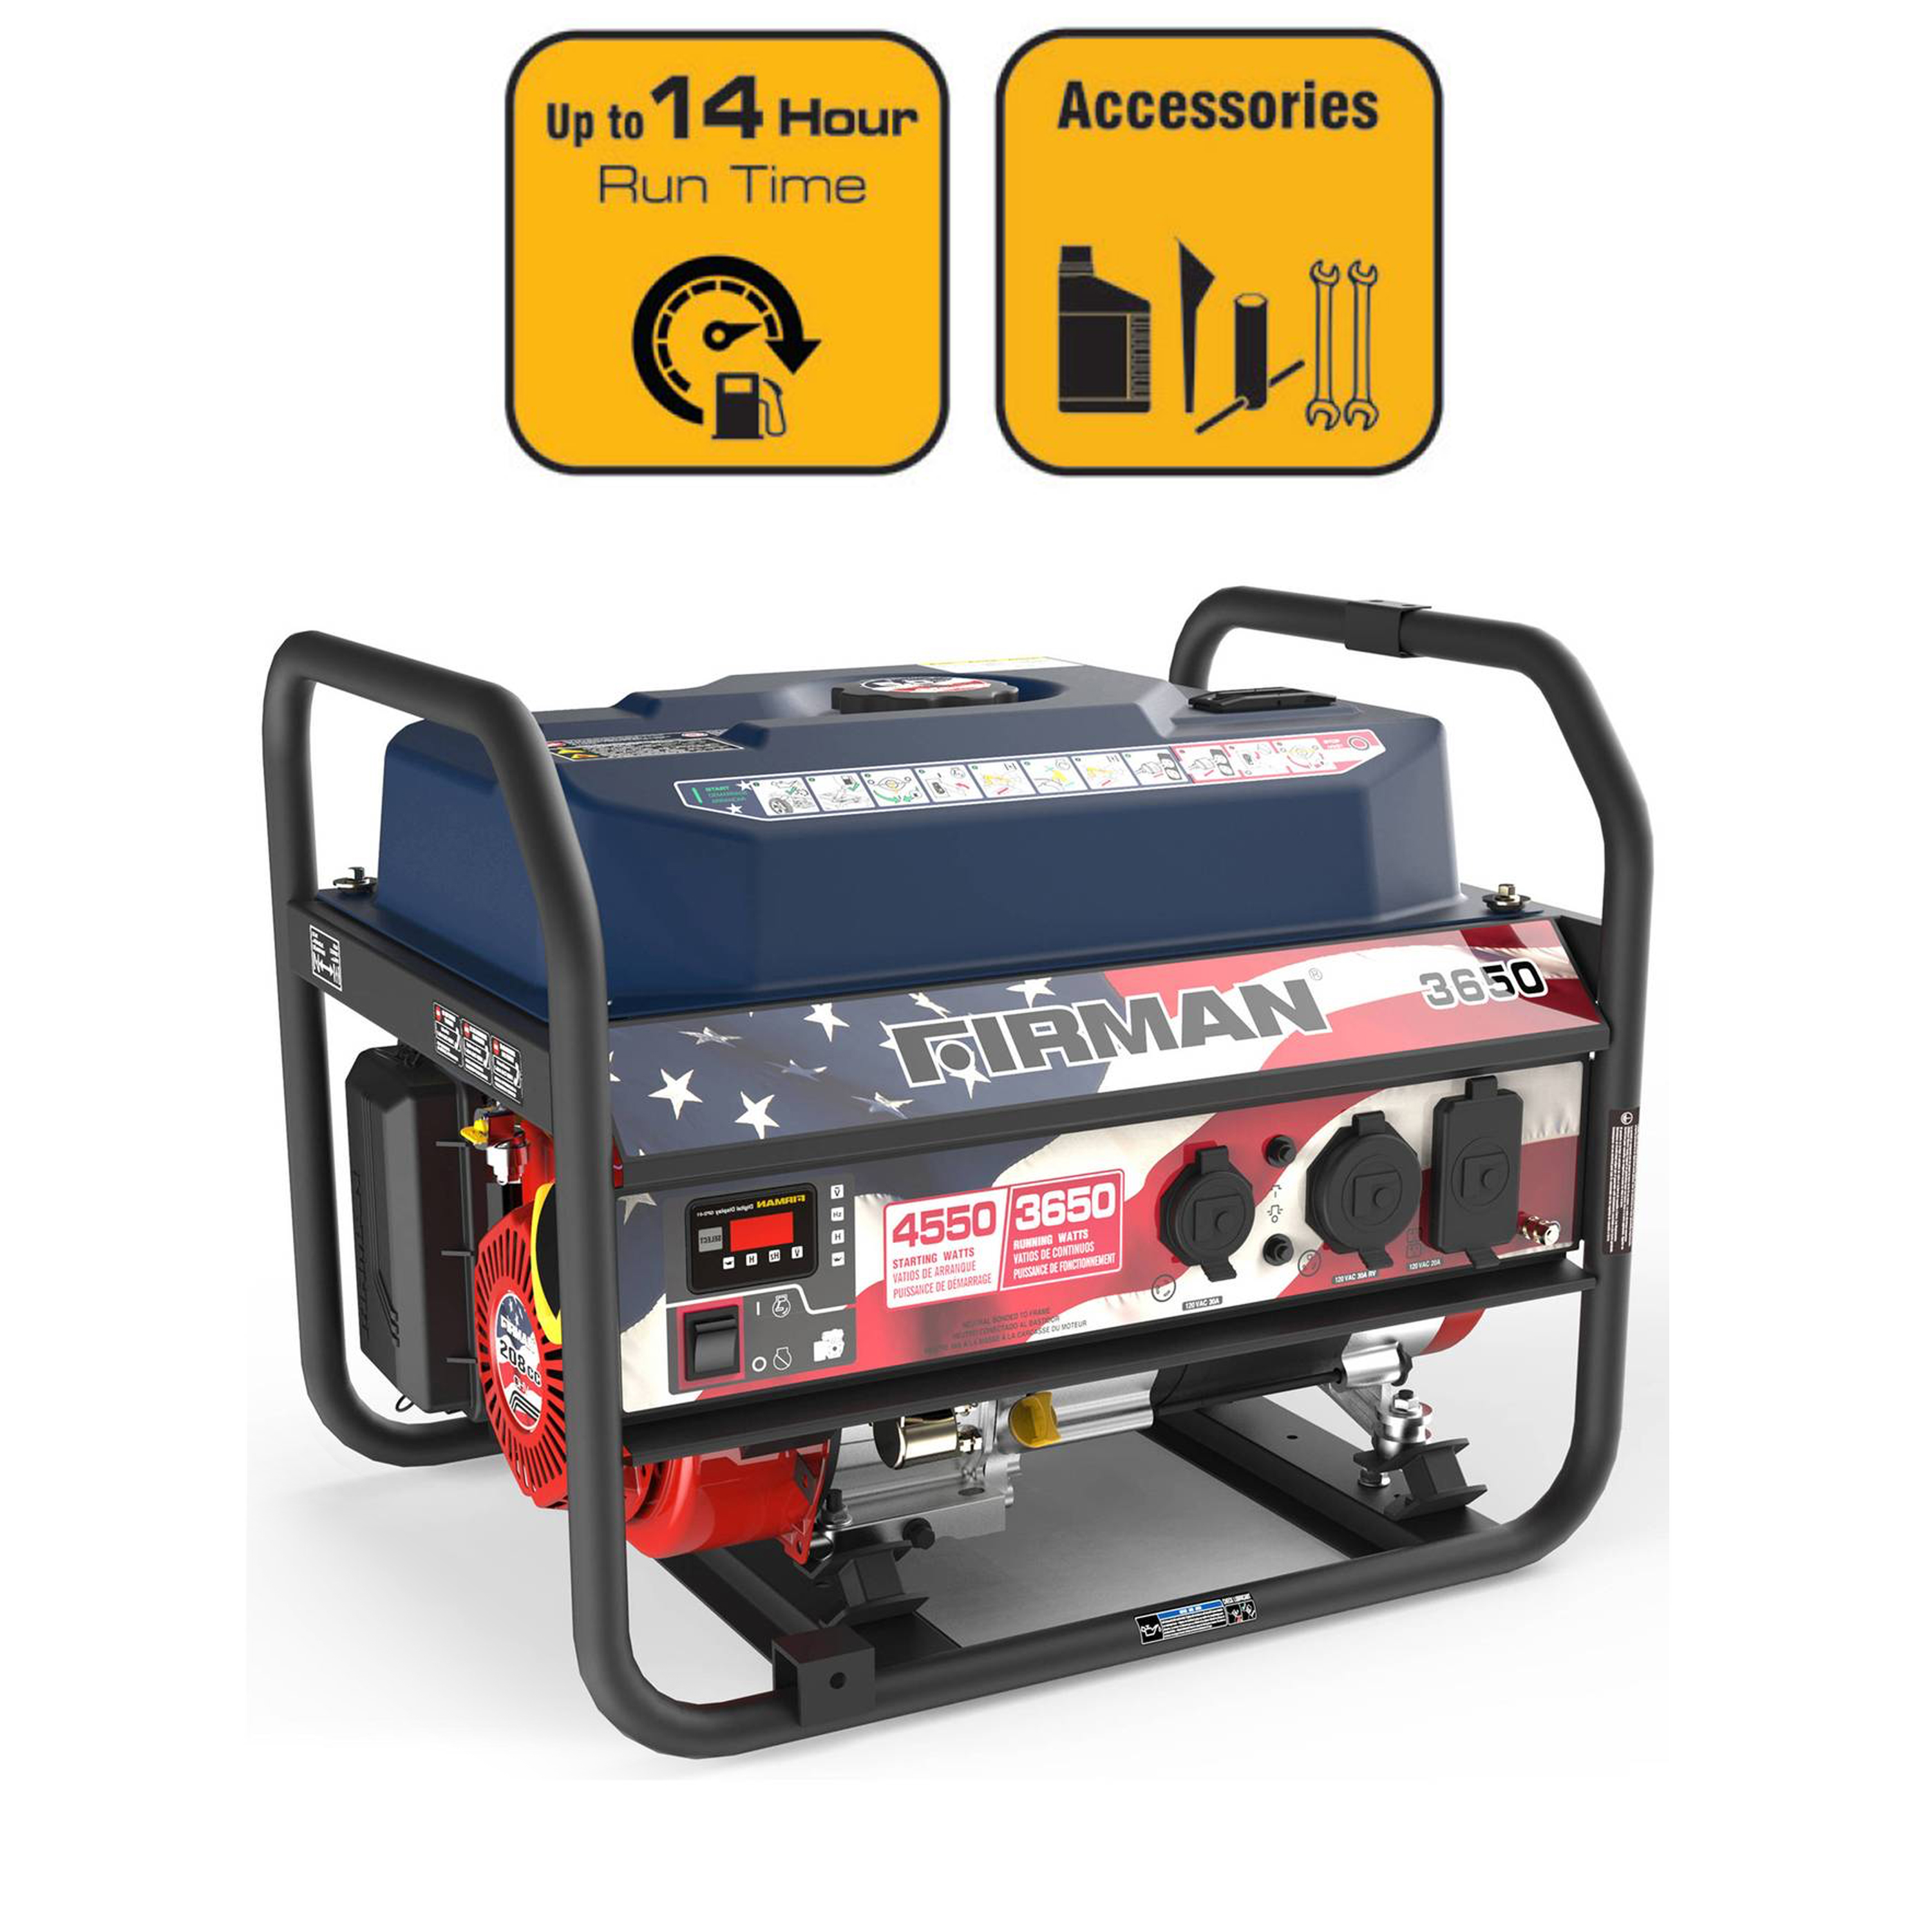 Firman P03611 4550/3650 Watt Gas Recoil Start Generator, EPA Only (Stars and Stripes)